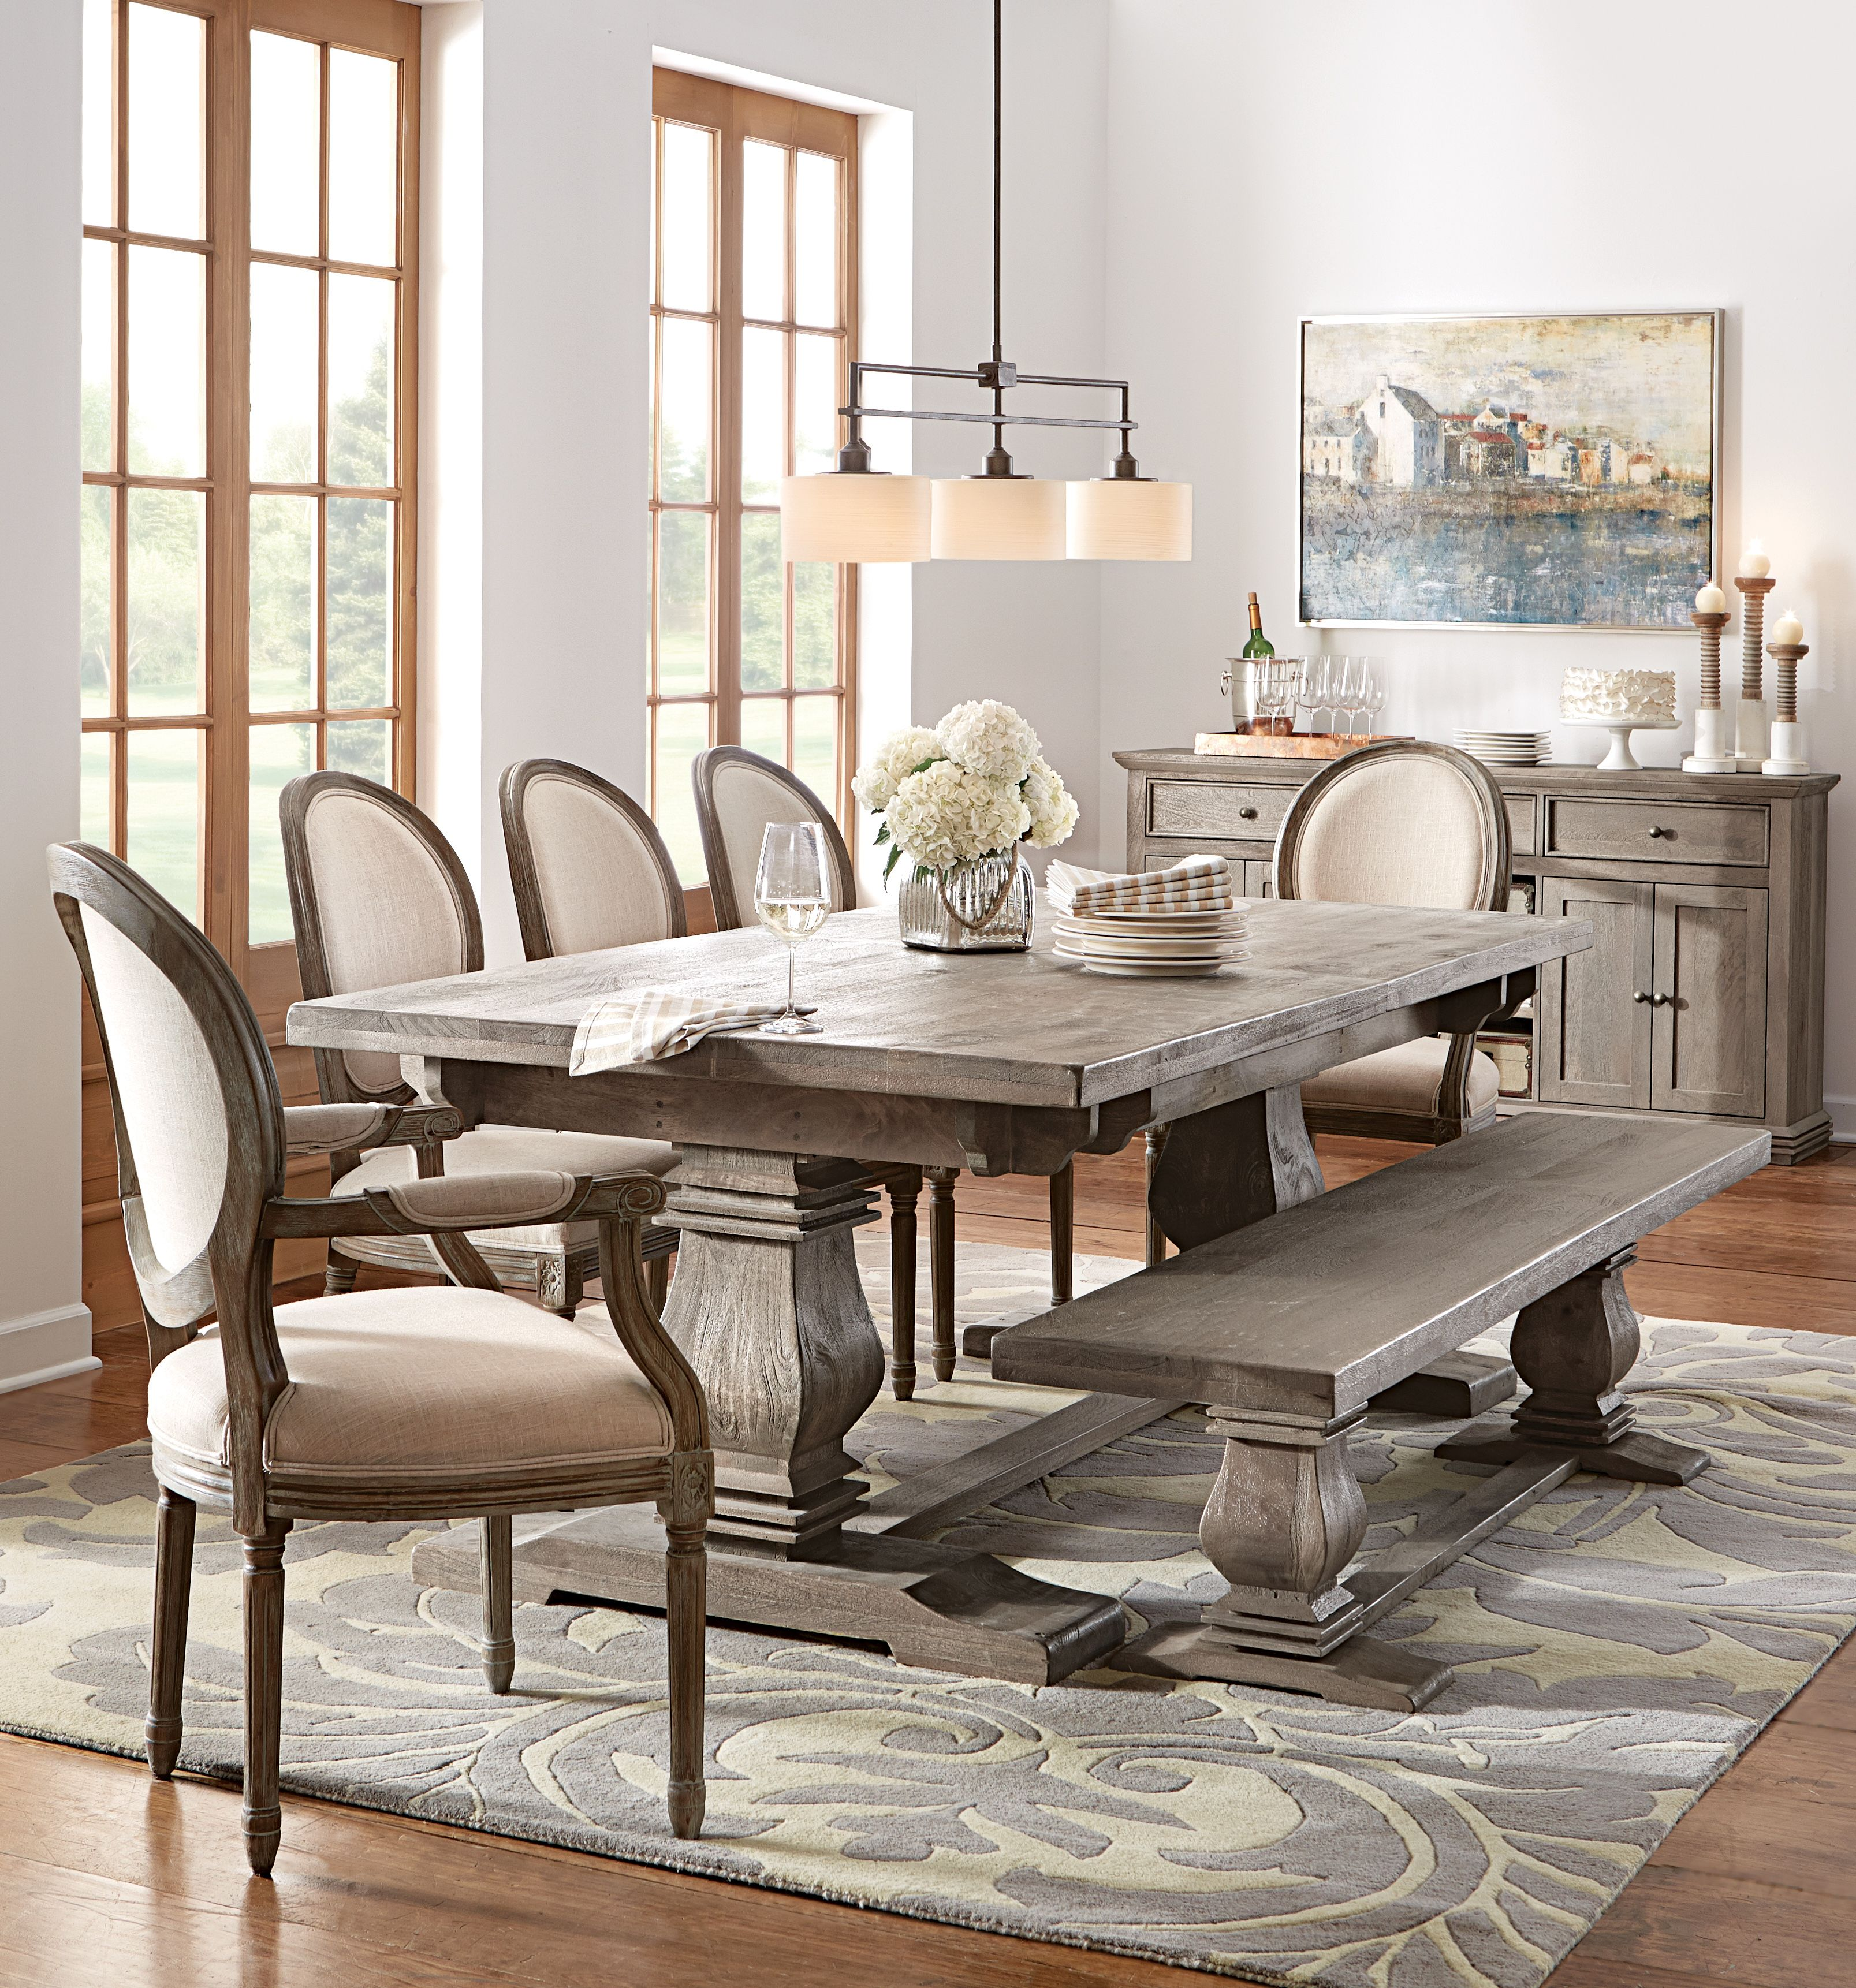 Ordinaire Fit As Many Guests As Comfortably Possible With N Extendable Dining Table.  HomeDecorators.com #12DaysofDeals2015 #dining